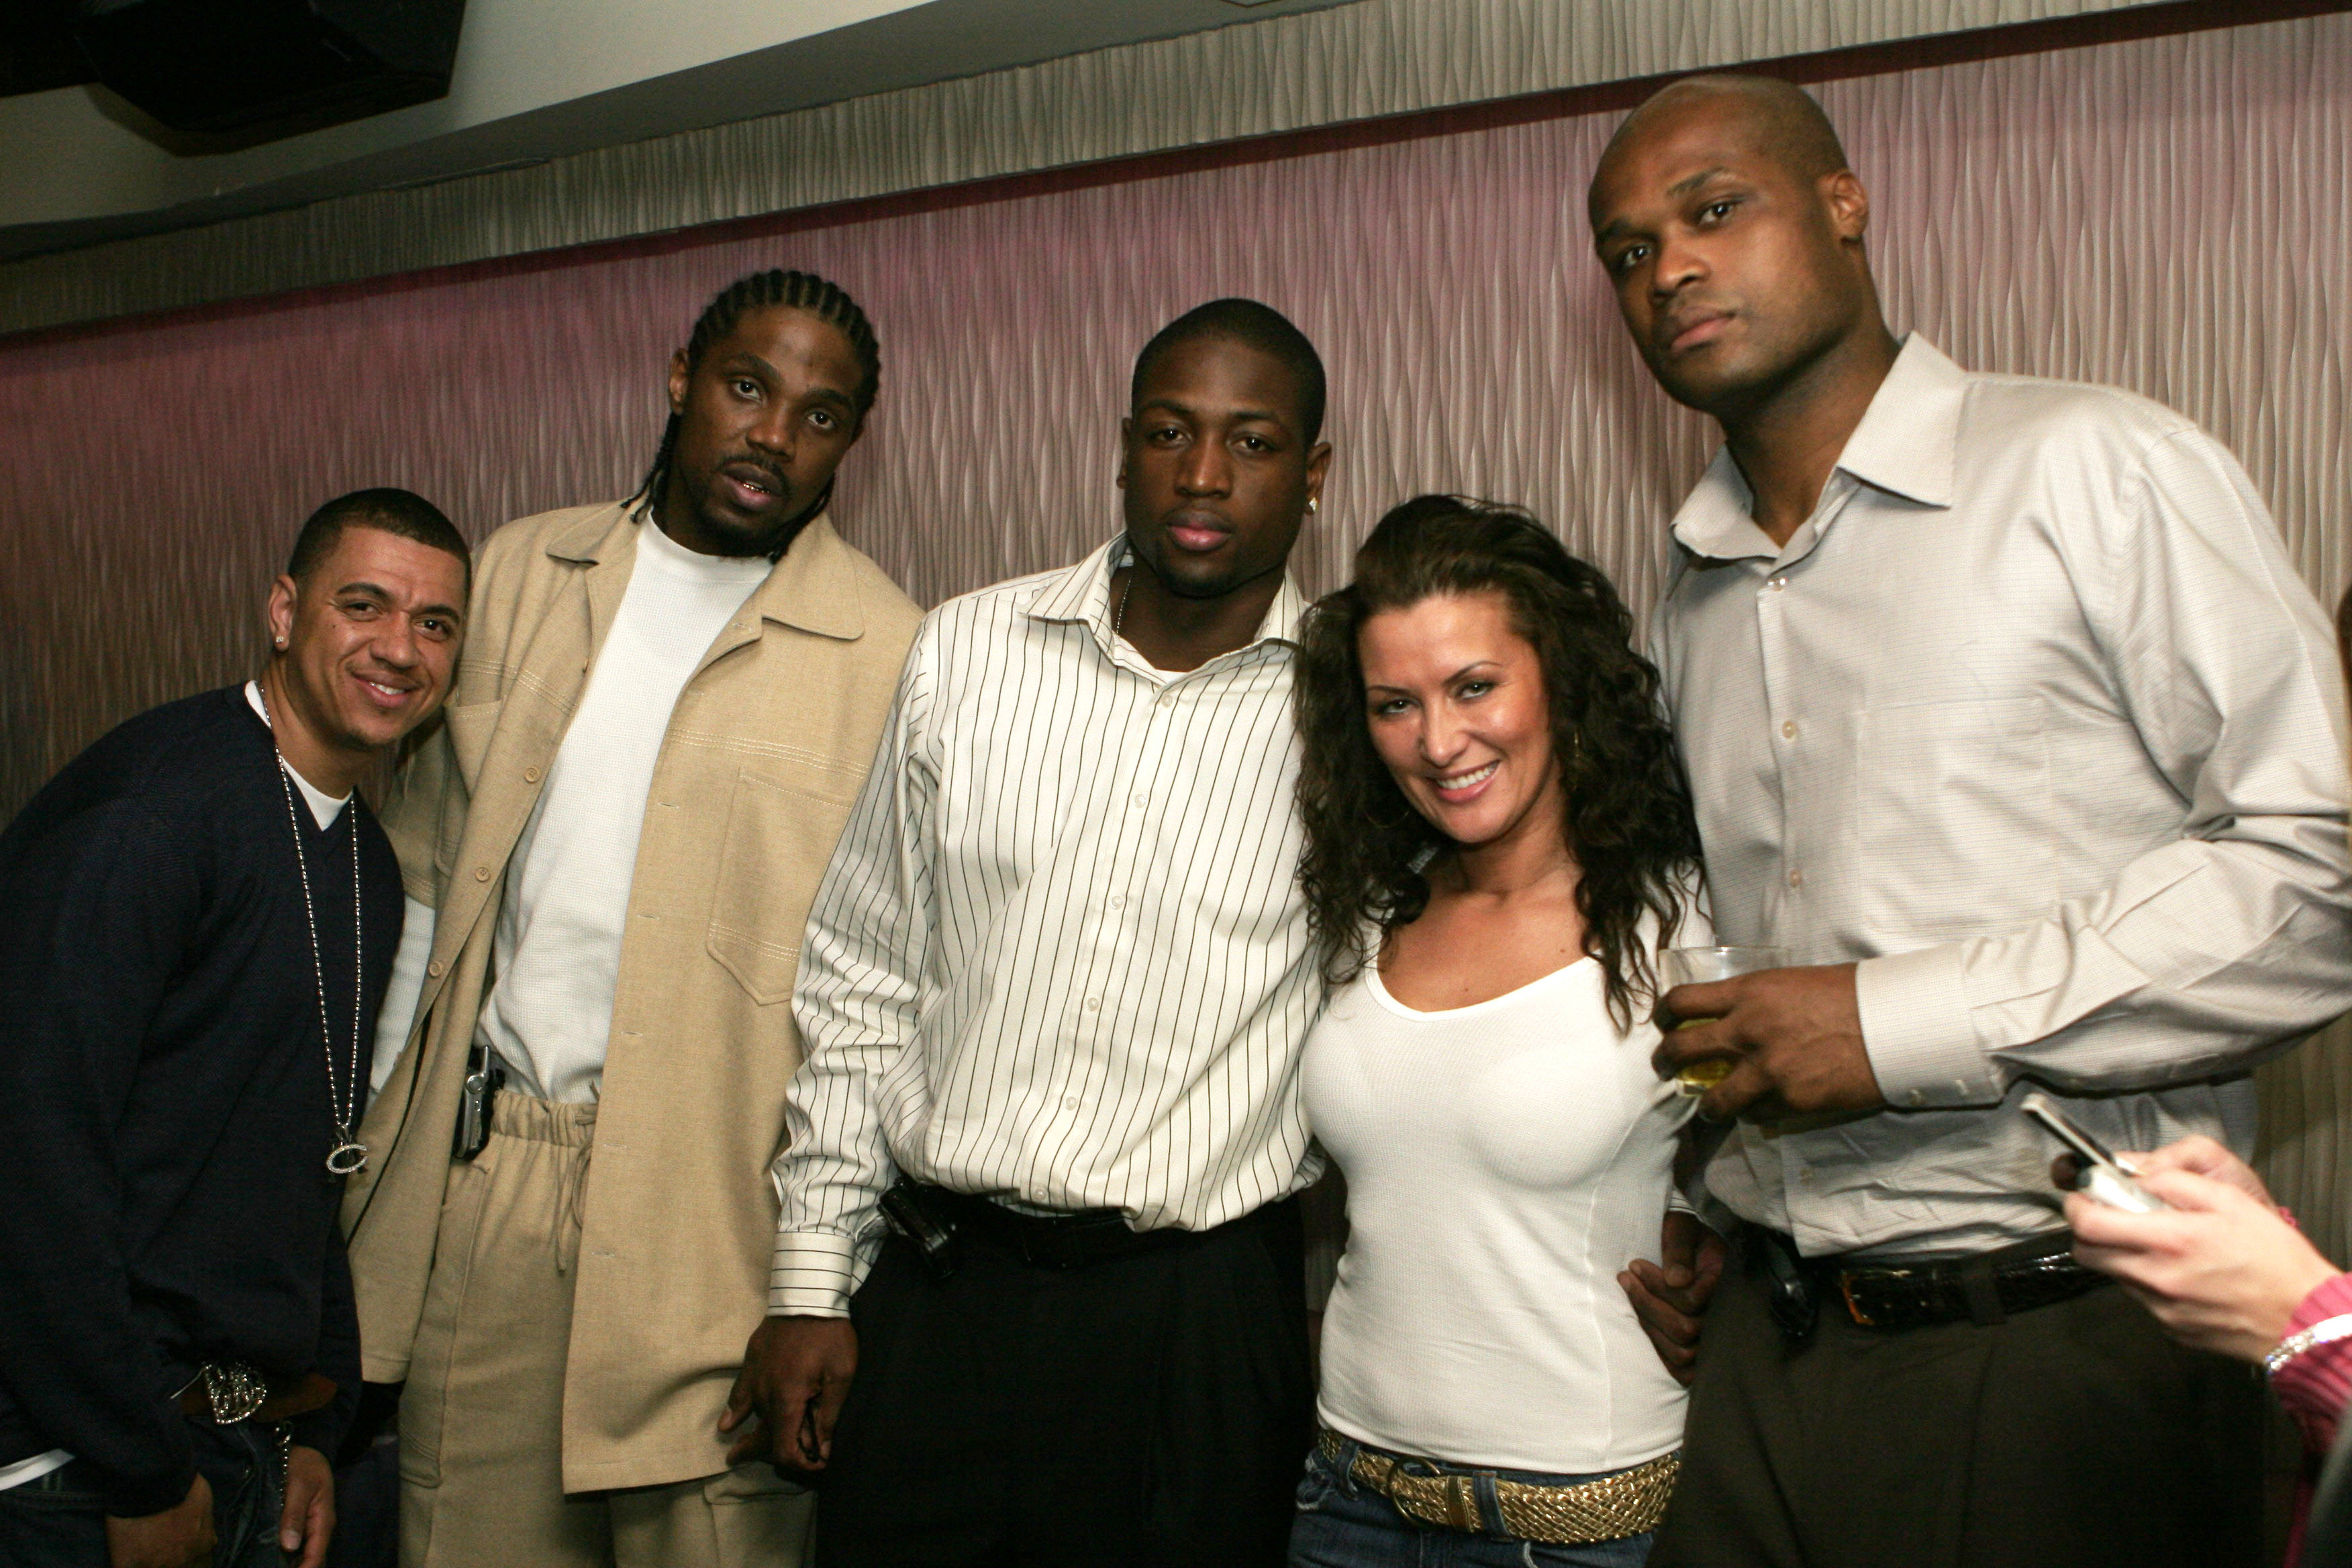 Wade at a party with teammate Udonis Haslem and former teammate Antoine Walker and others.